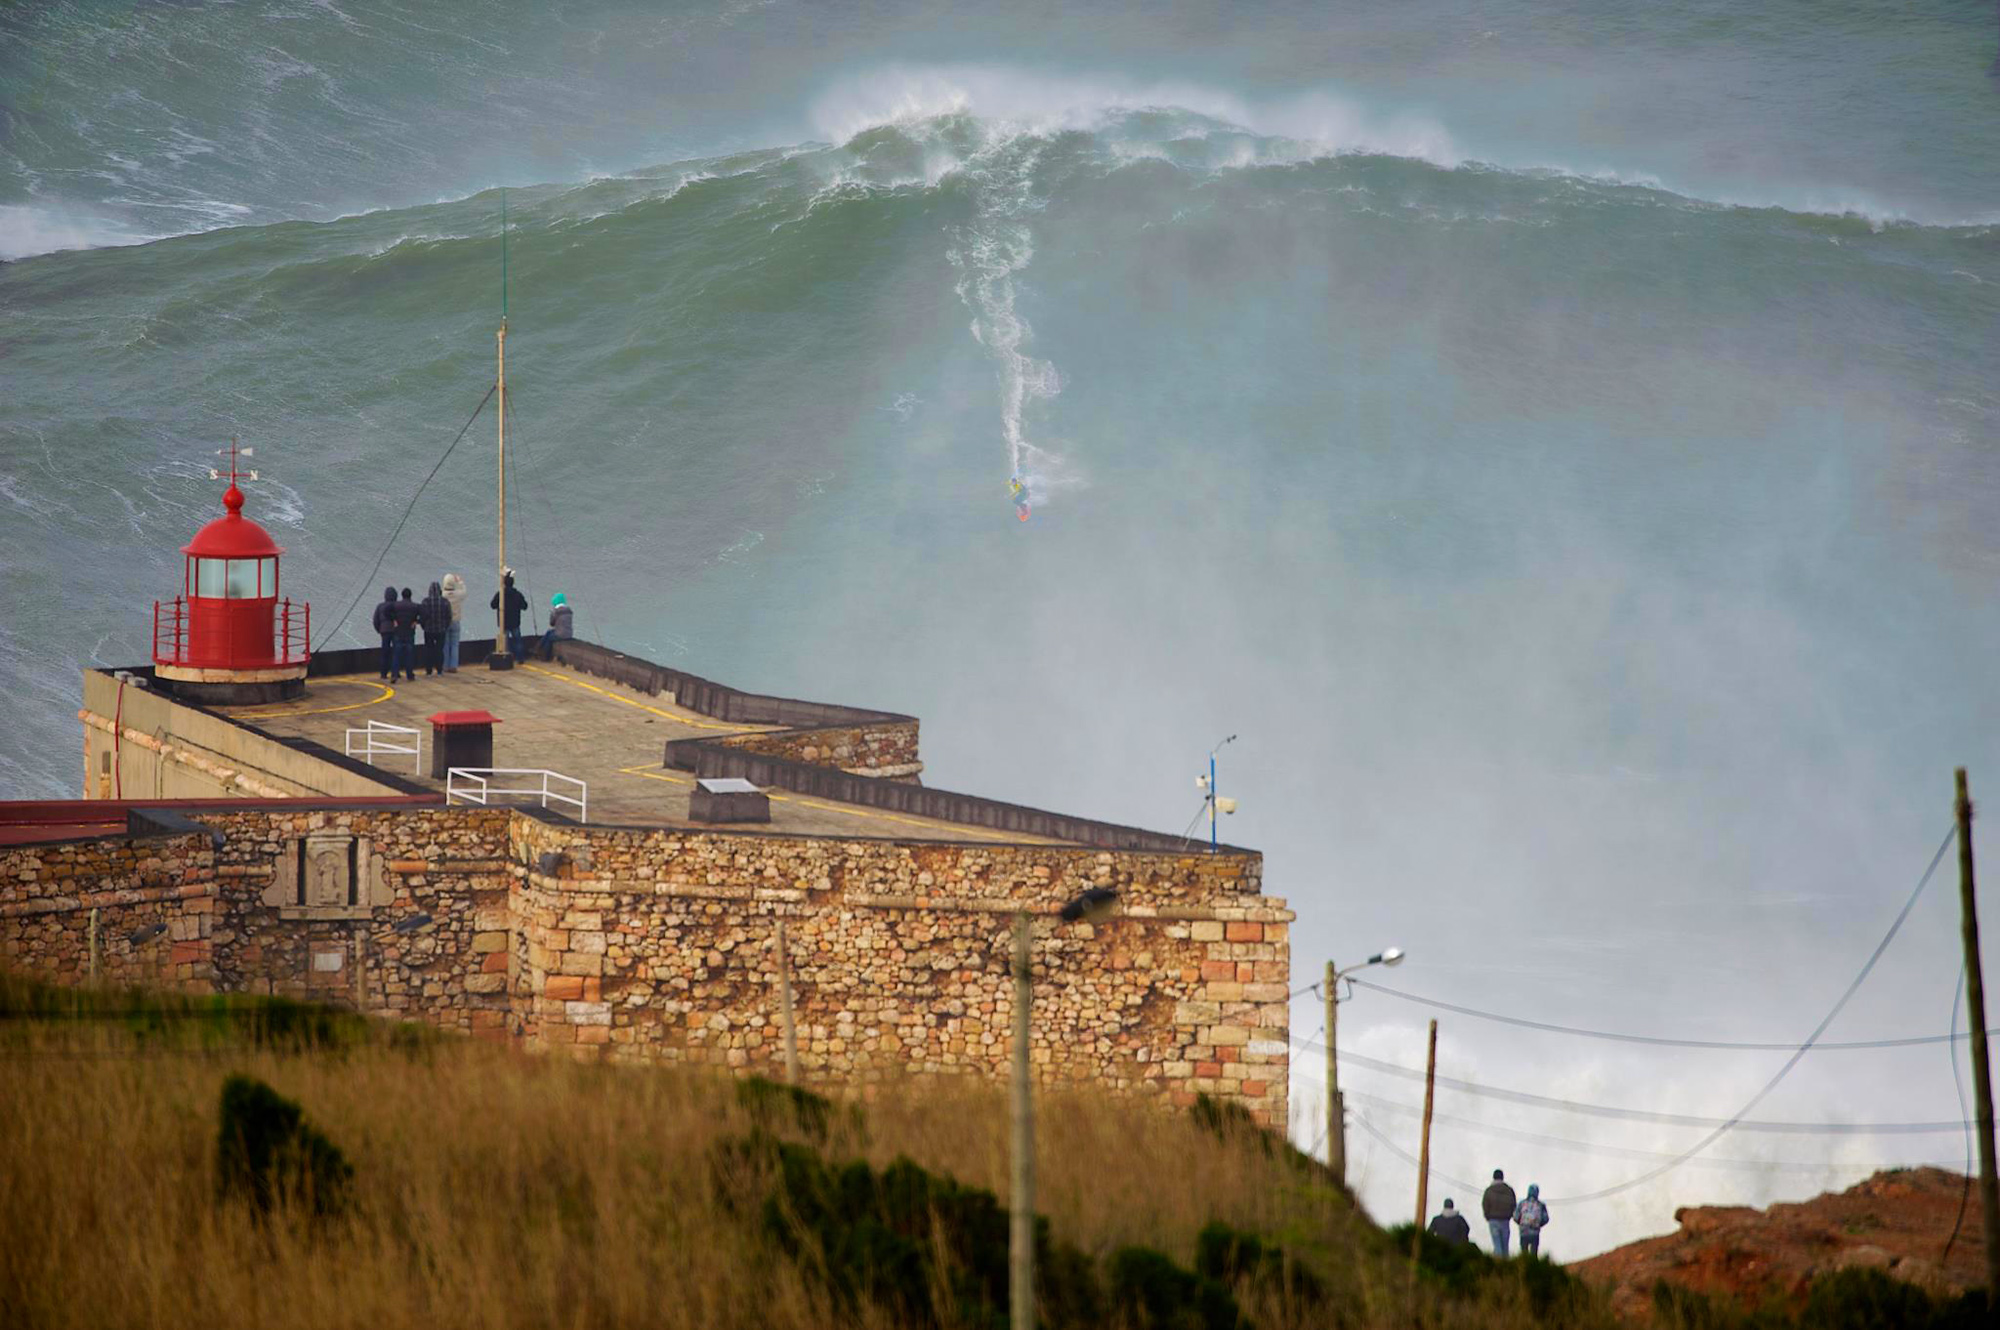 The Wave - They Say This Was The Biggest Wave Ever Surfed